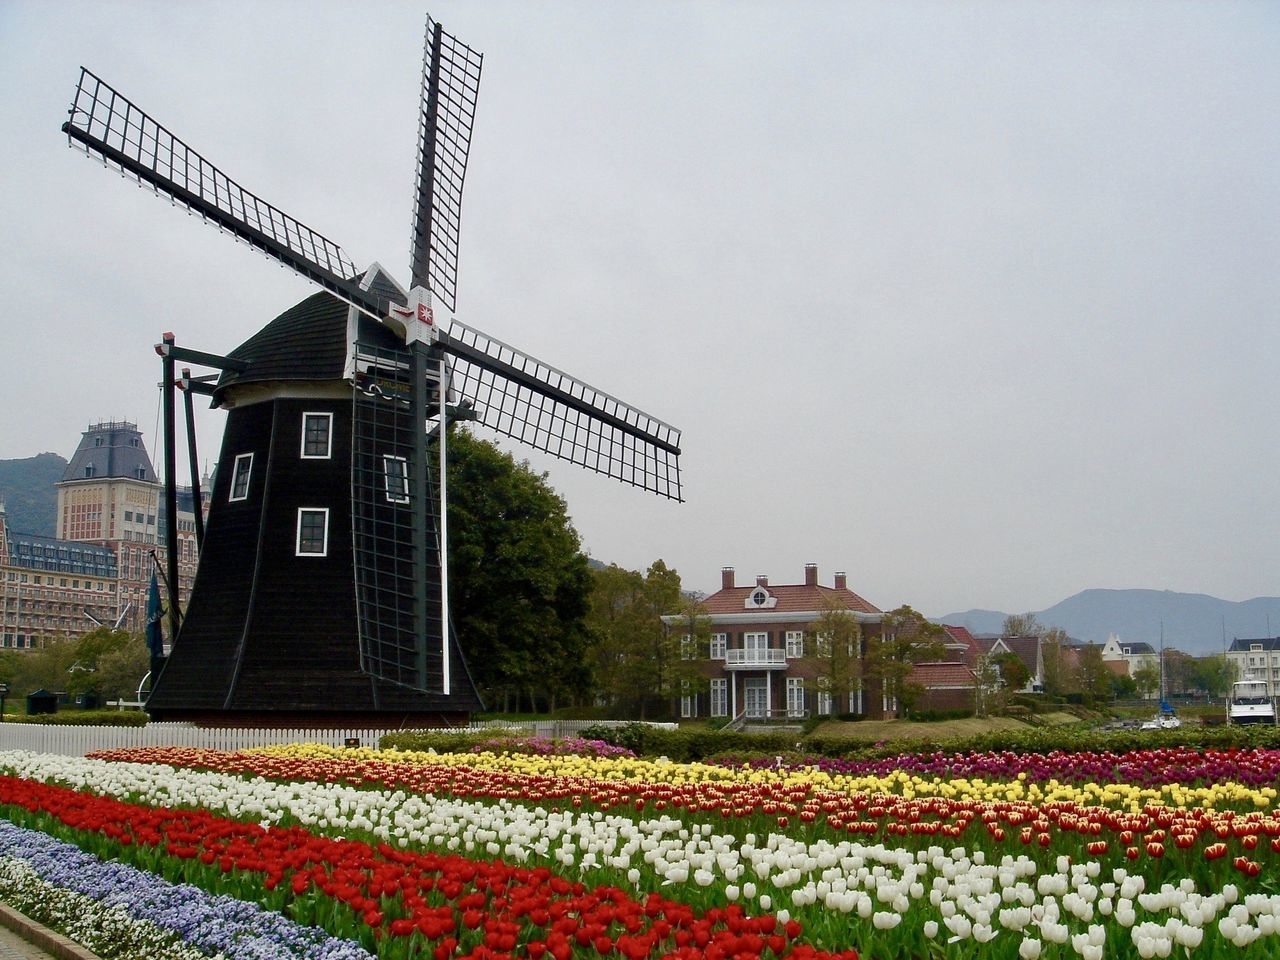 Memorial Photo of Dutch Windmill at Huis Ten Bosch in Japan Architecture Beauty In Nature Building Exterior Built Structure Day Dutch Countyside Dutch Landscape Dutch Village Flower Flower Field Flower Head Imitation Nature No People Outdoors Recreation  Sky Tulips Windmill